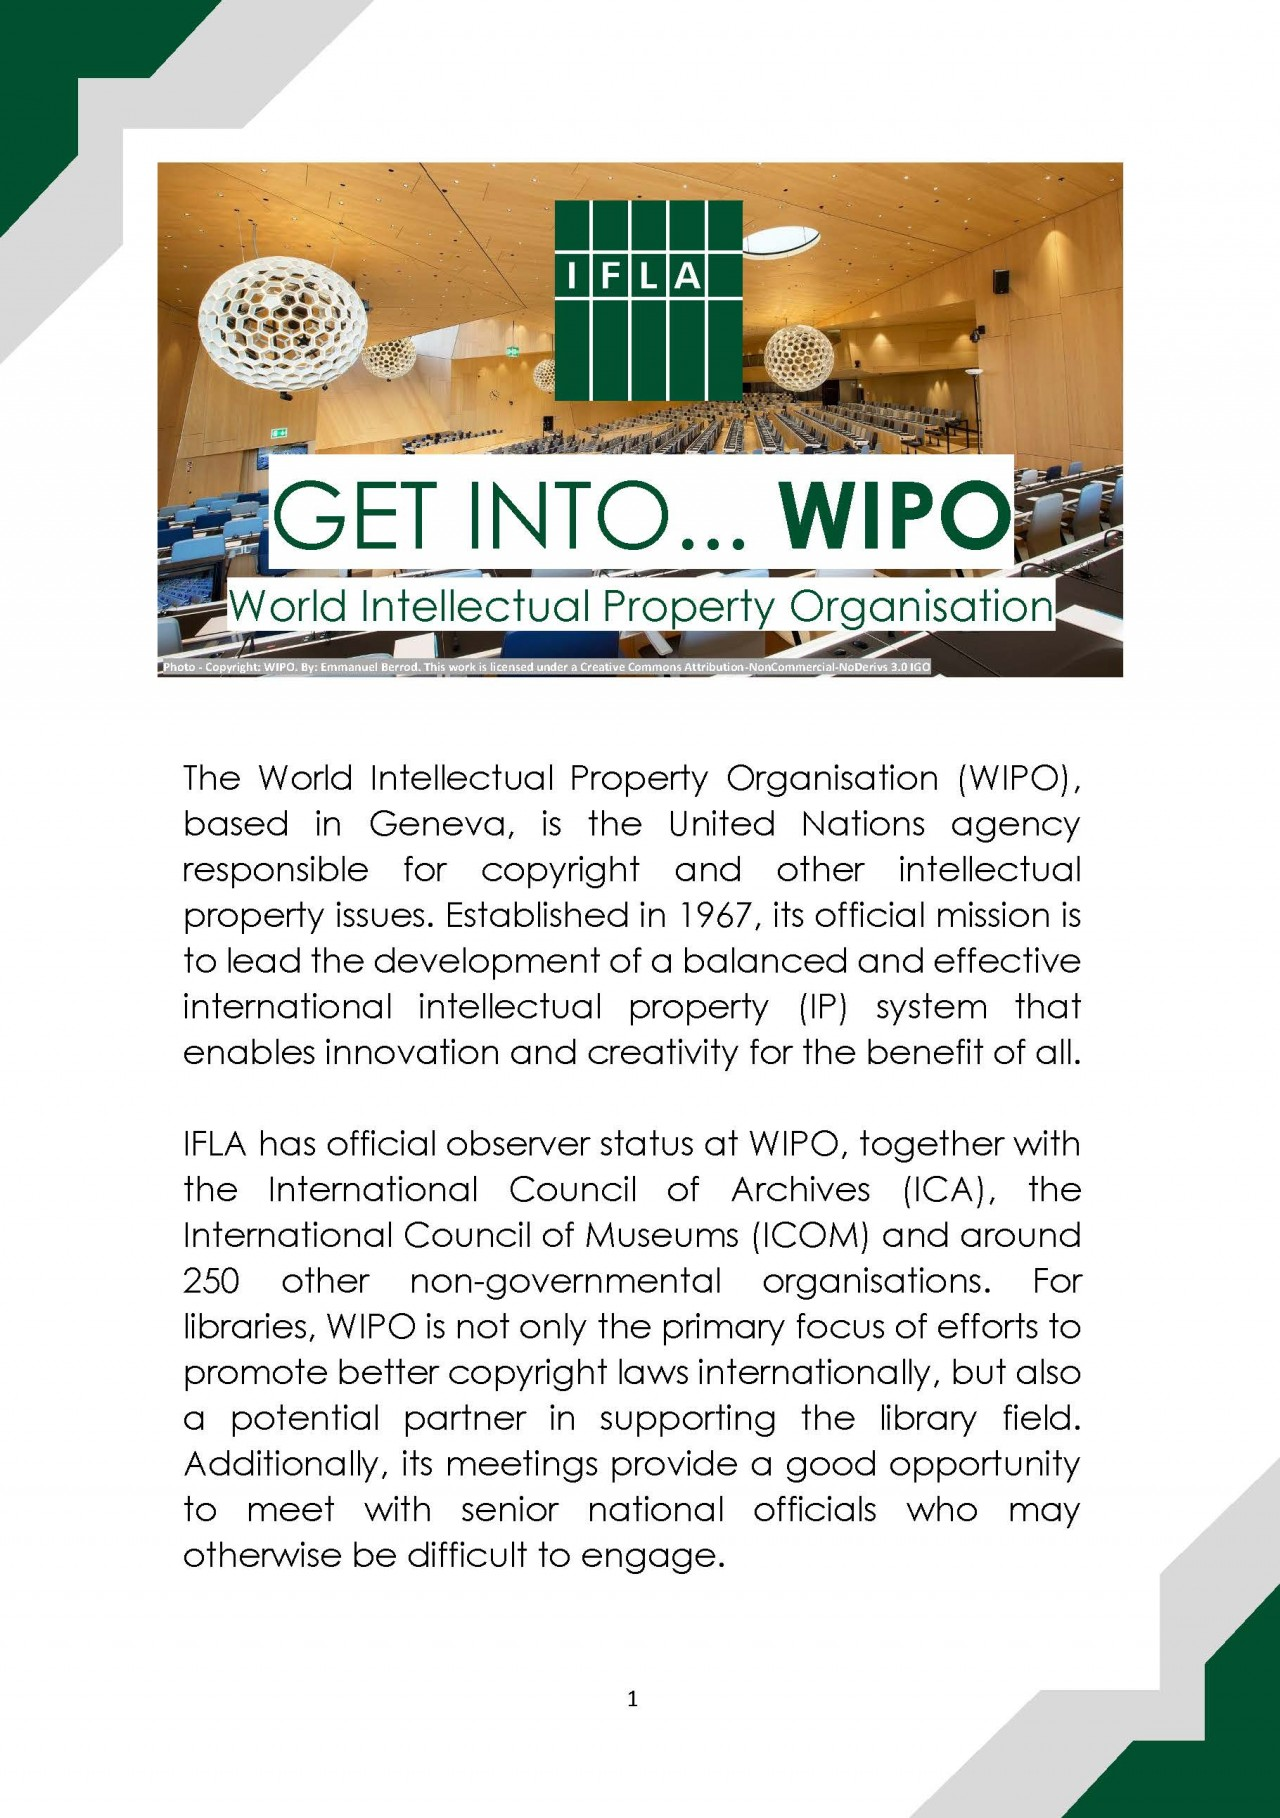 GET INTO WIPO Guide